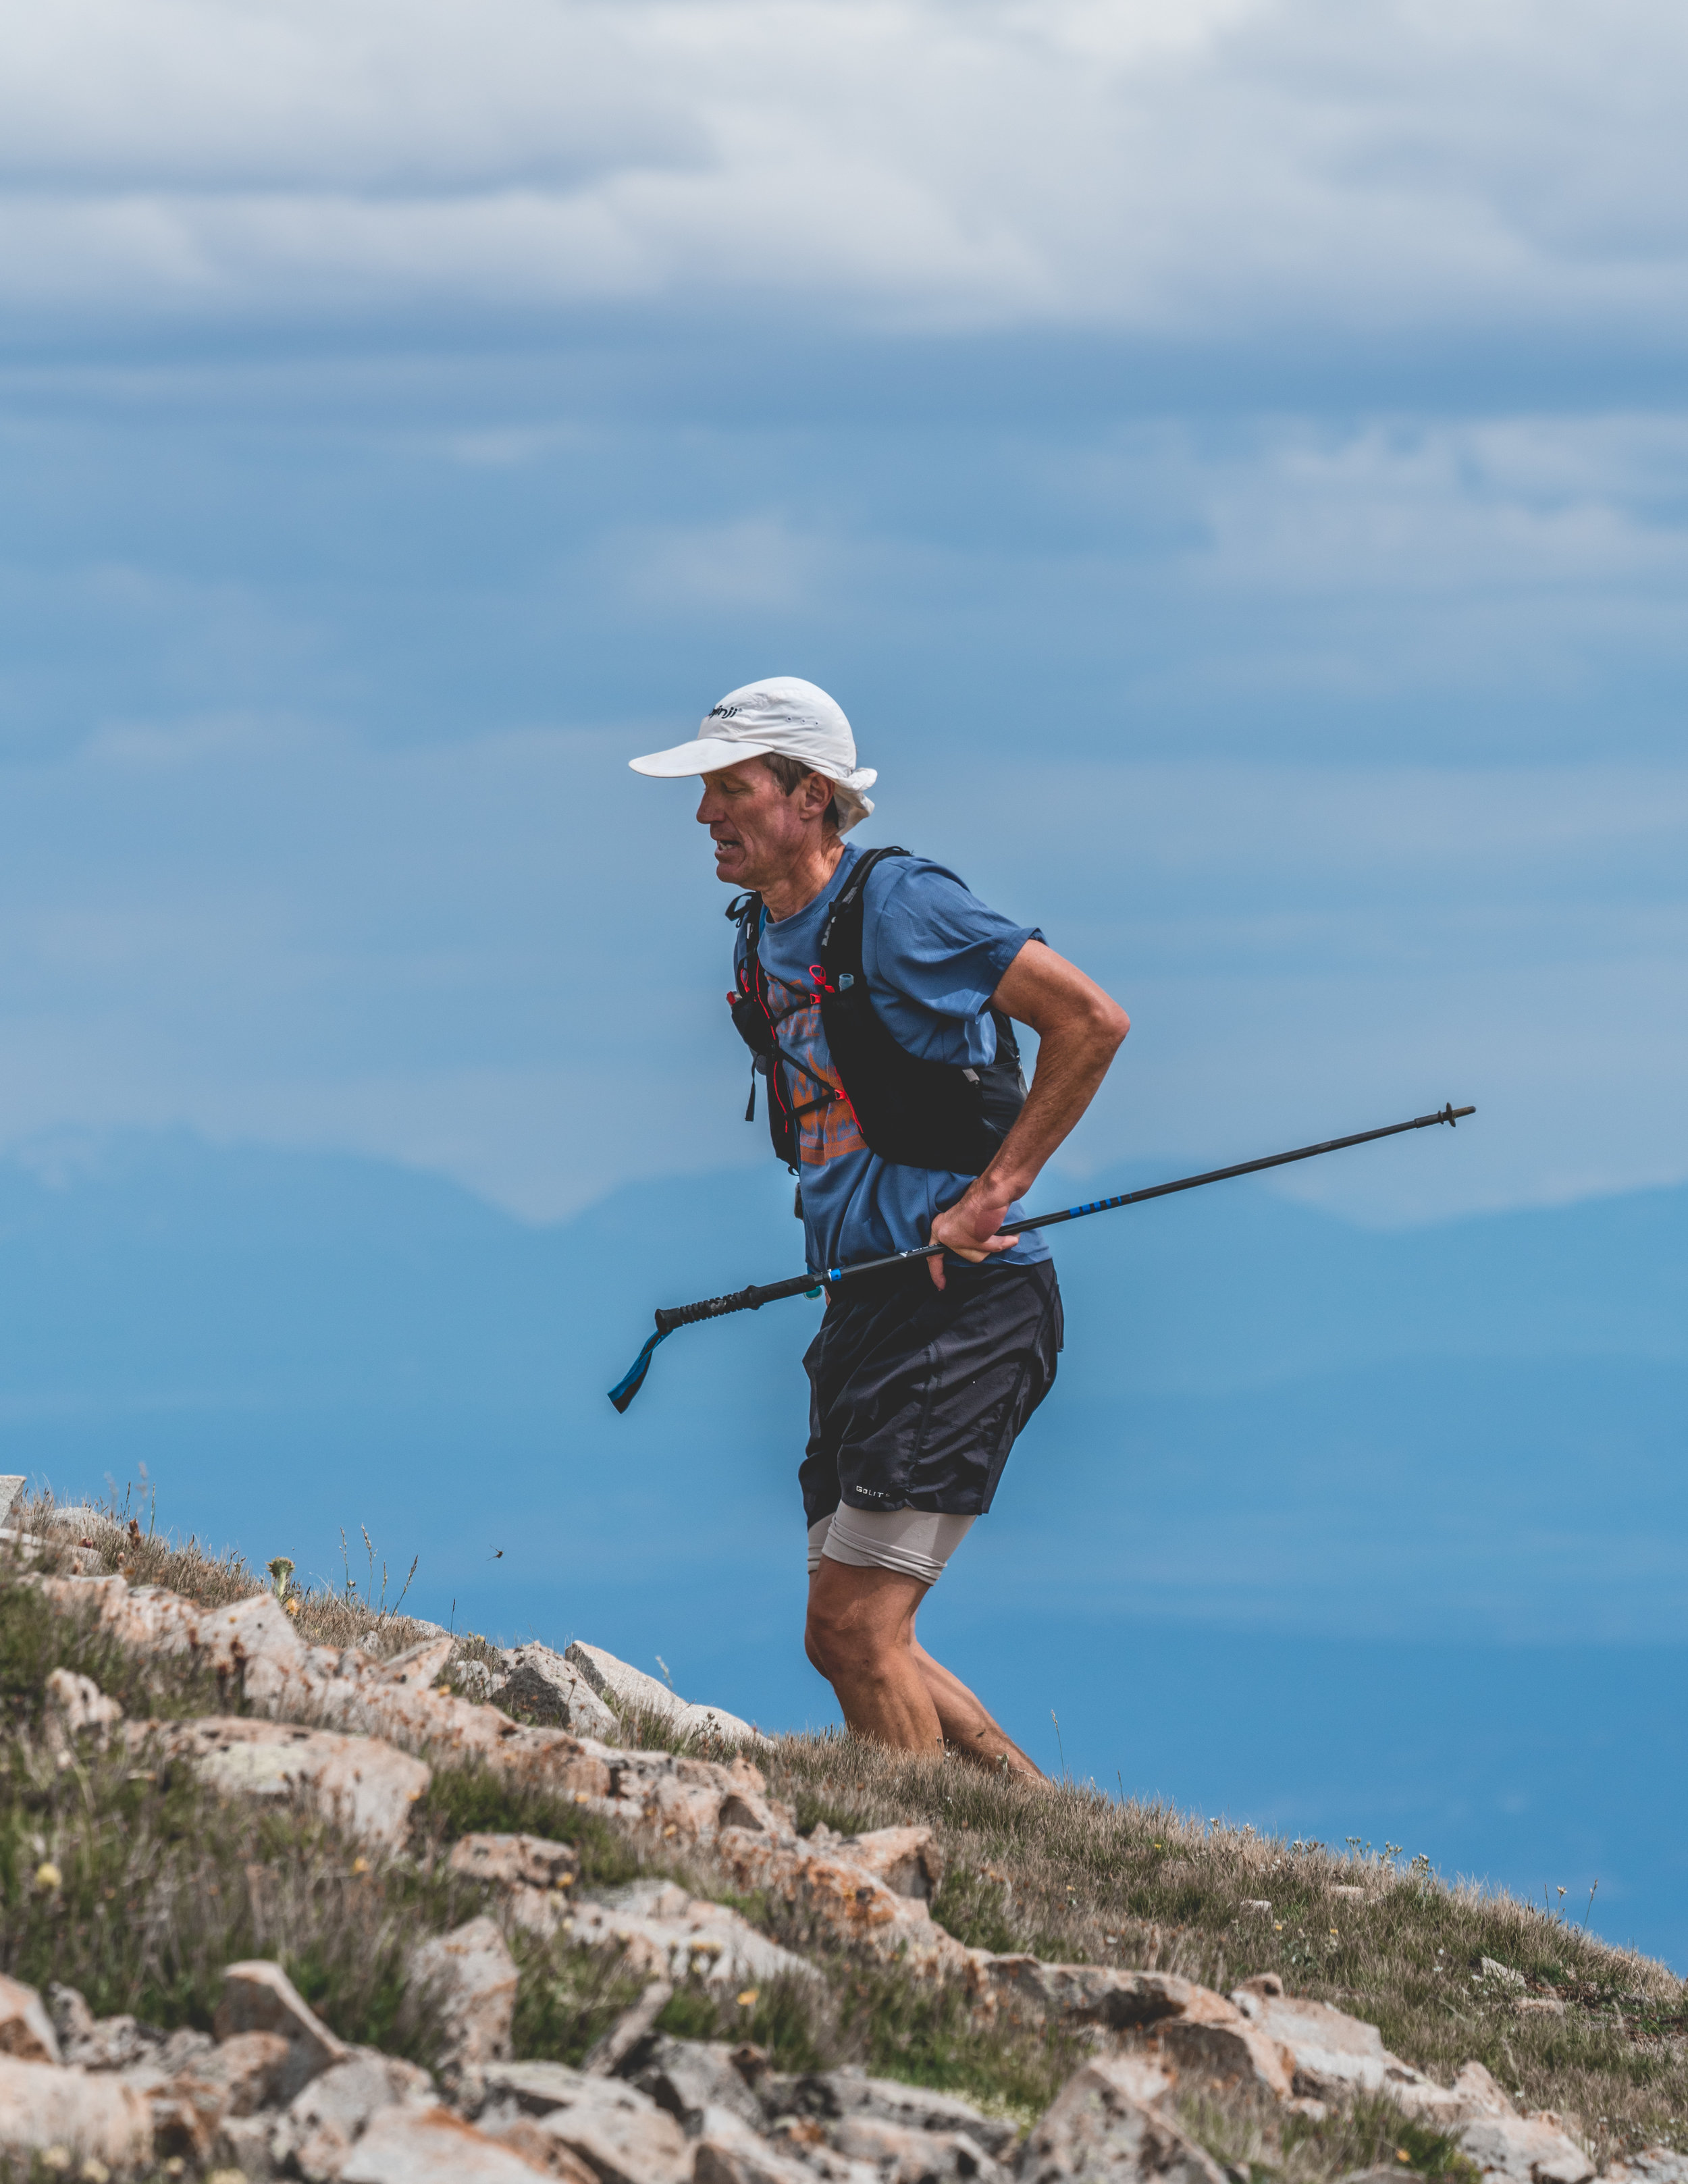 I'M DR. MIKE - I've lived in Fort Collins, Colorado for more than 25 years, where I've helped thousands of patients as a board-certified podiatrist. I'm also an ultramarathon runner, mountaineer, and father of six crazy kids. My house call podiatry helps endurance athletes (or absolutely anyone!) live life to the fullest along the Front Range—both on and off the trails.